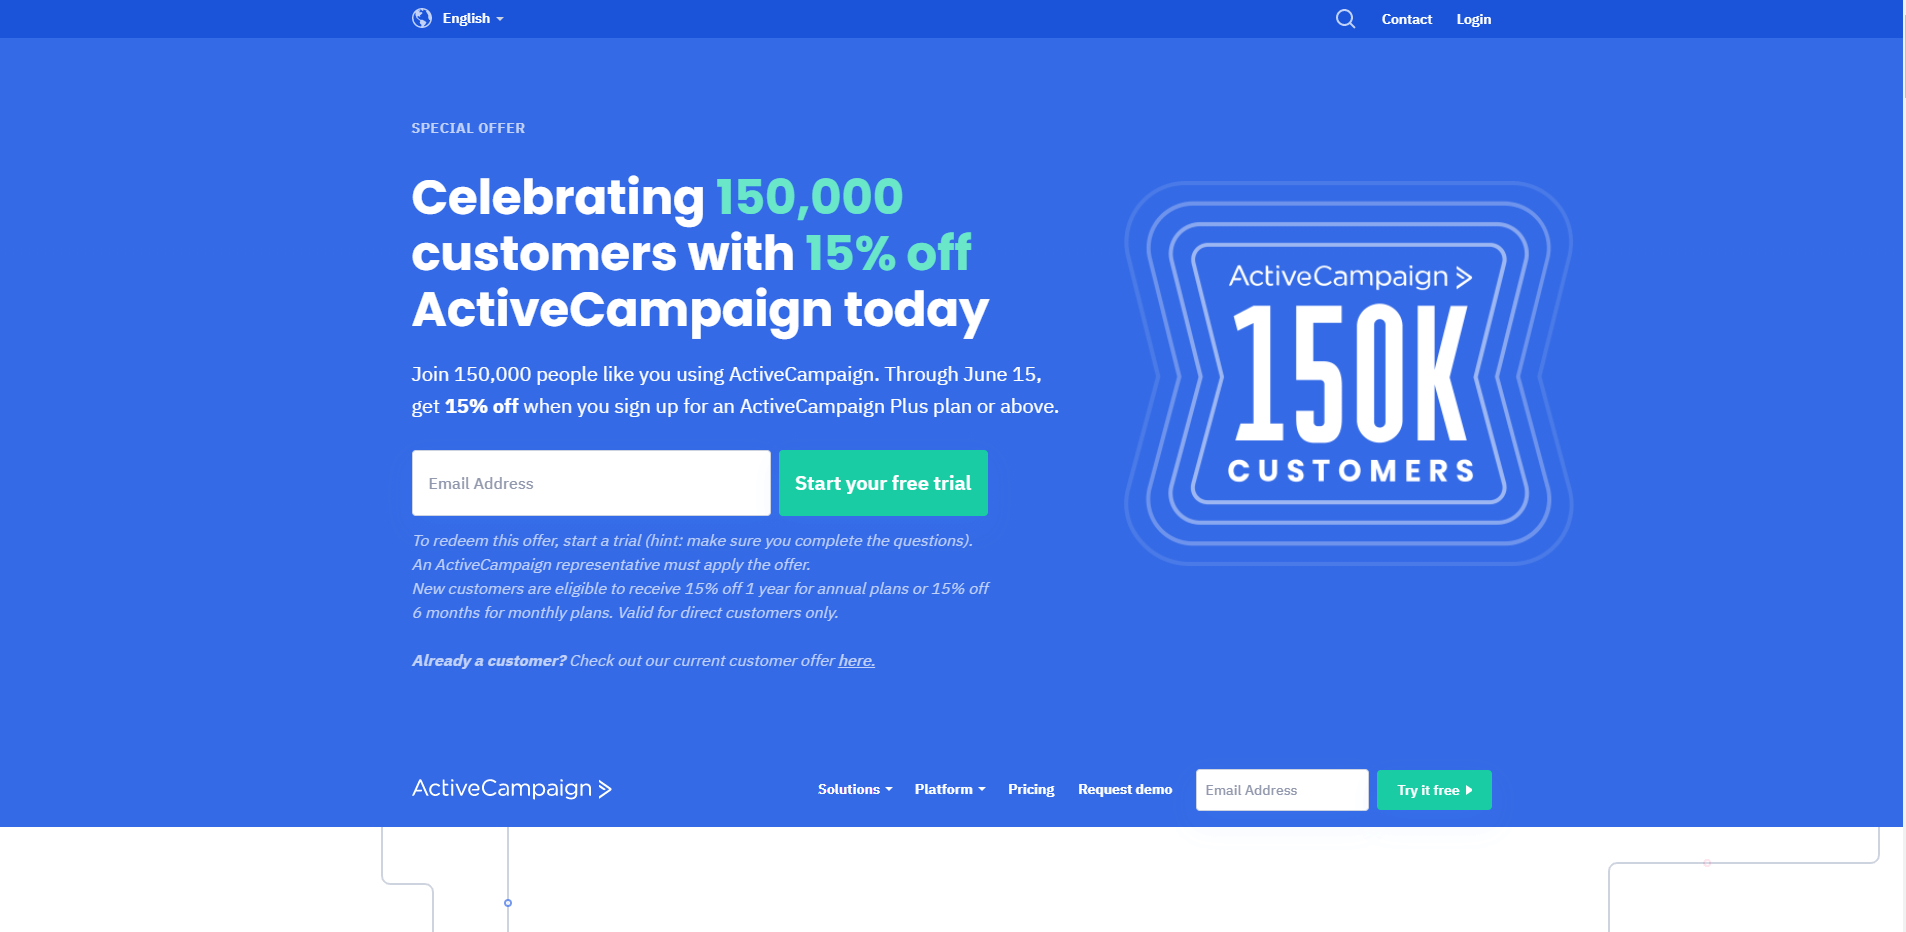 activecampaign home page